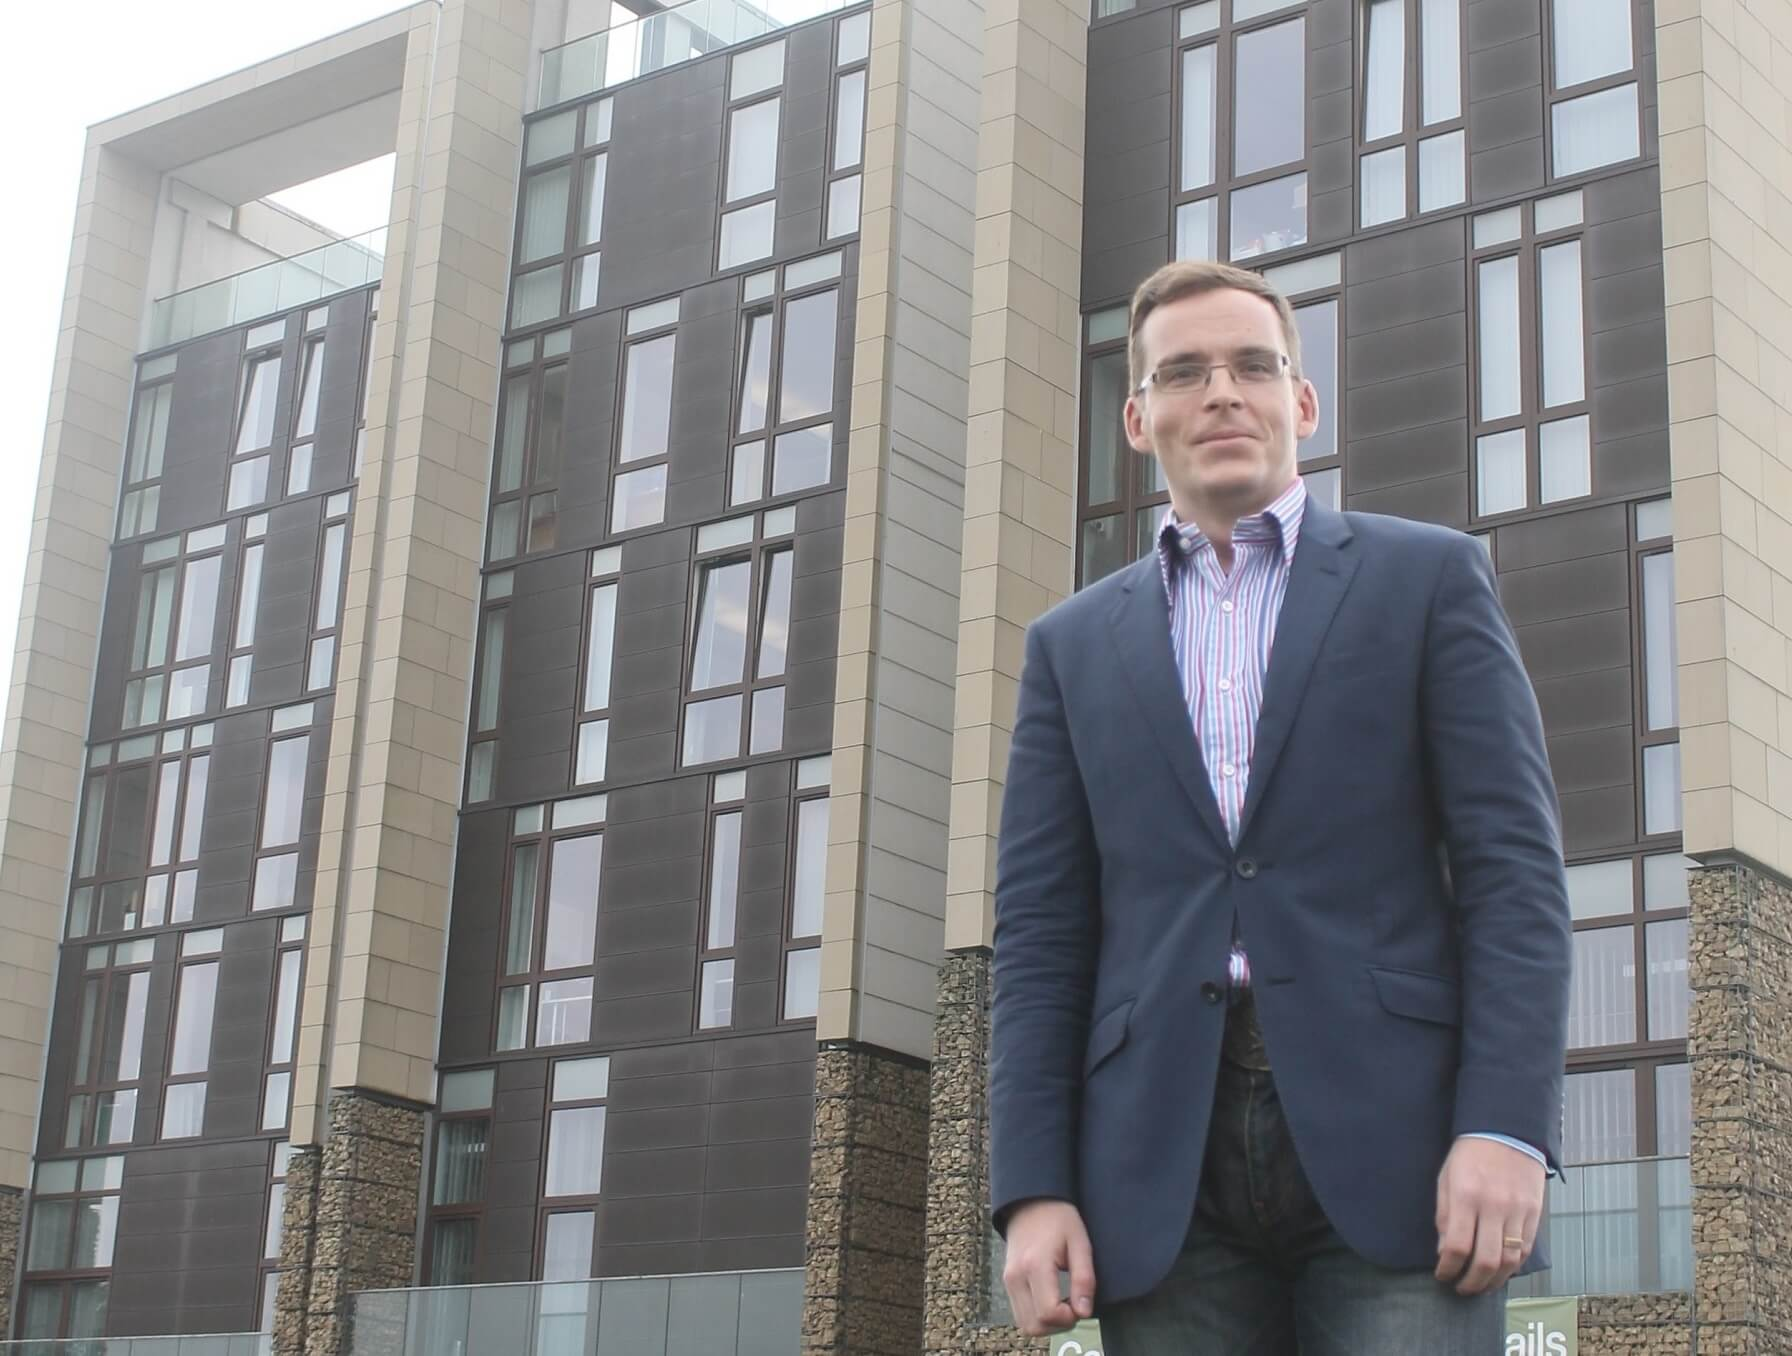 Barnsley specialist law firm shortlisted for awards